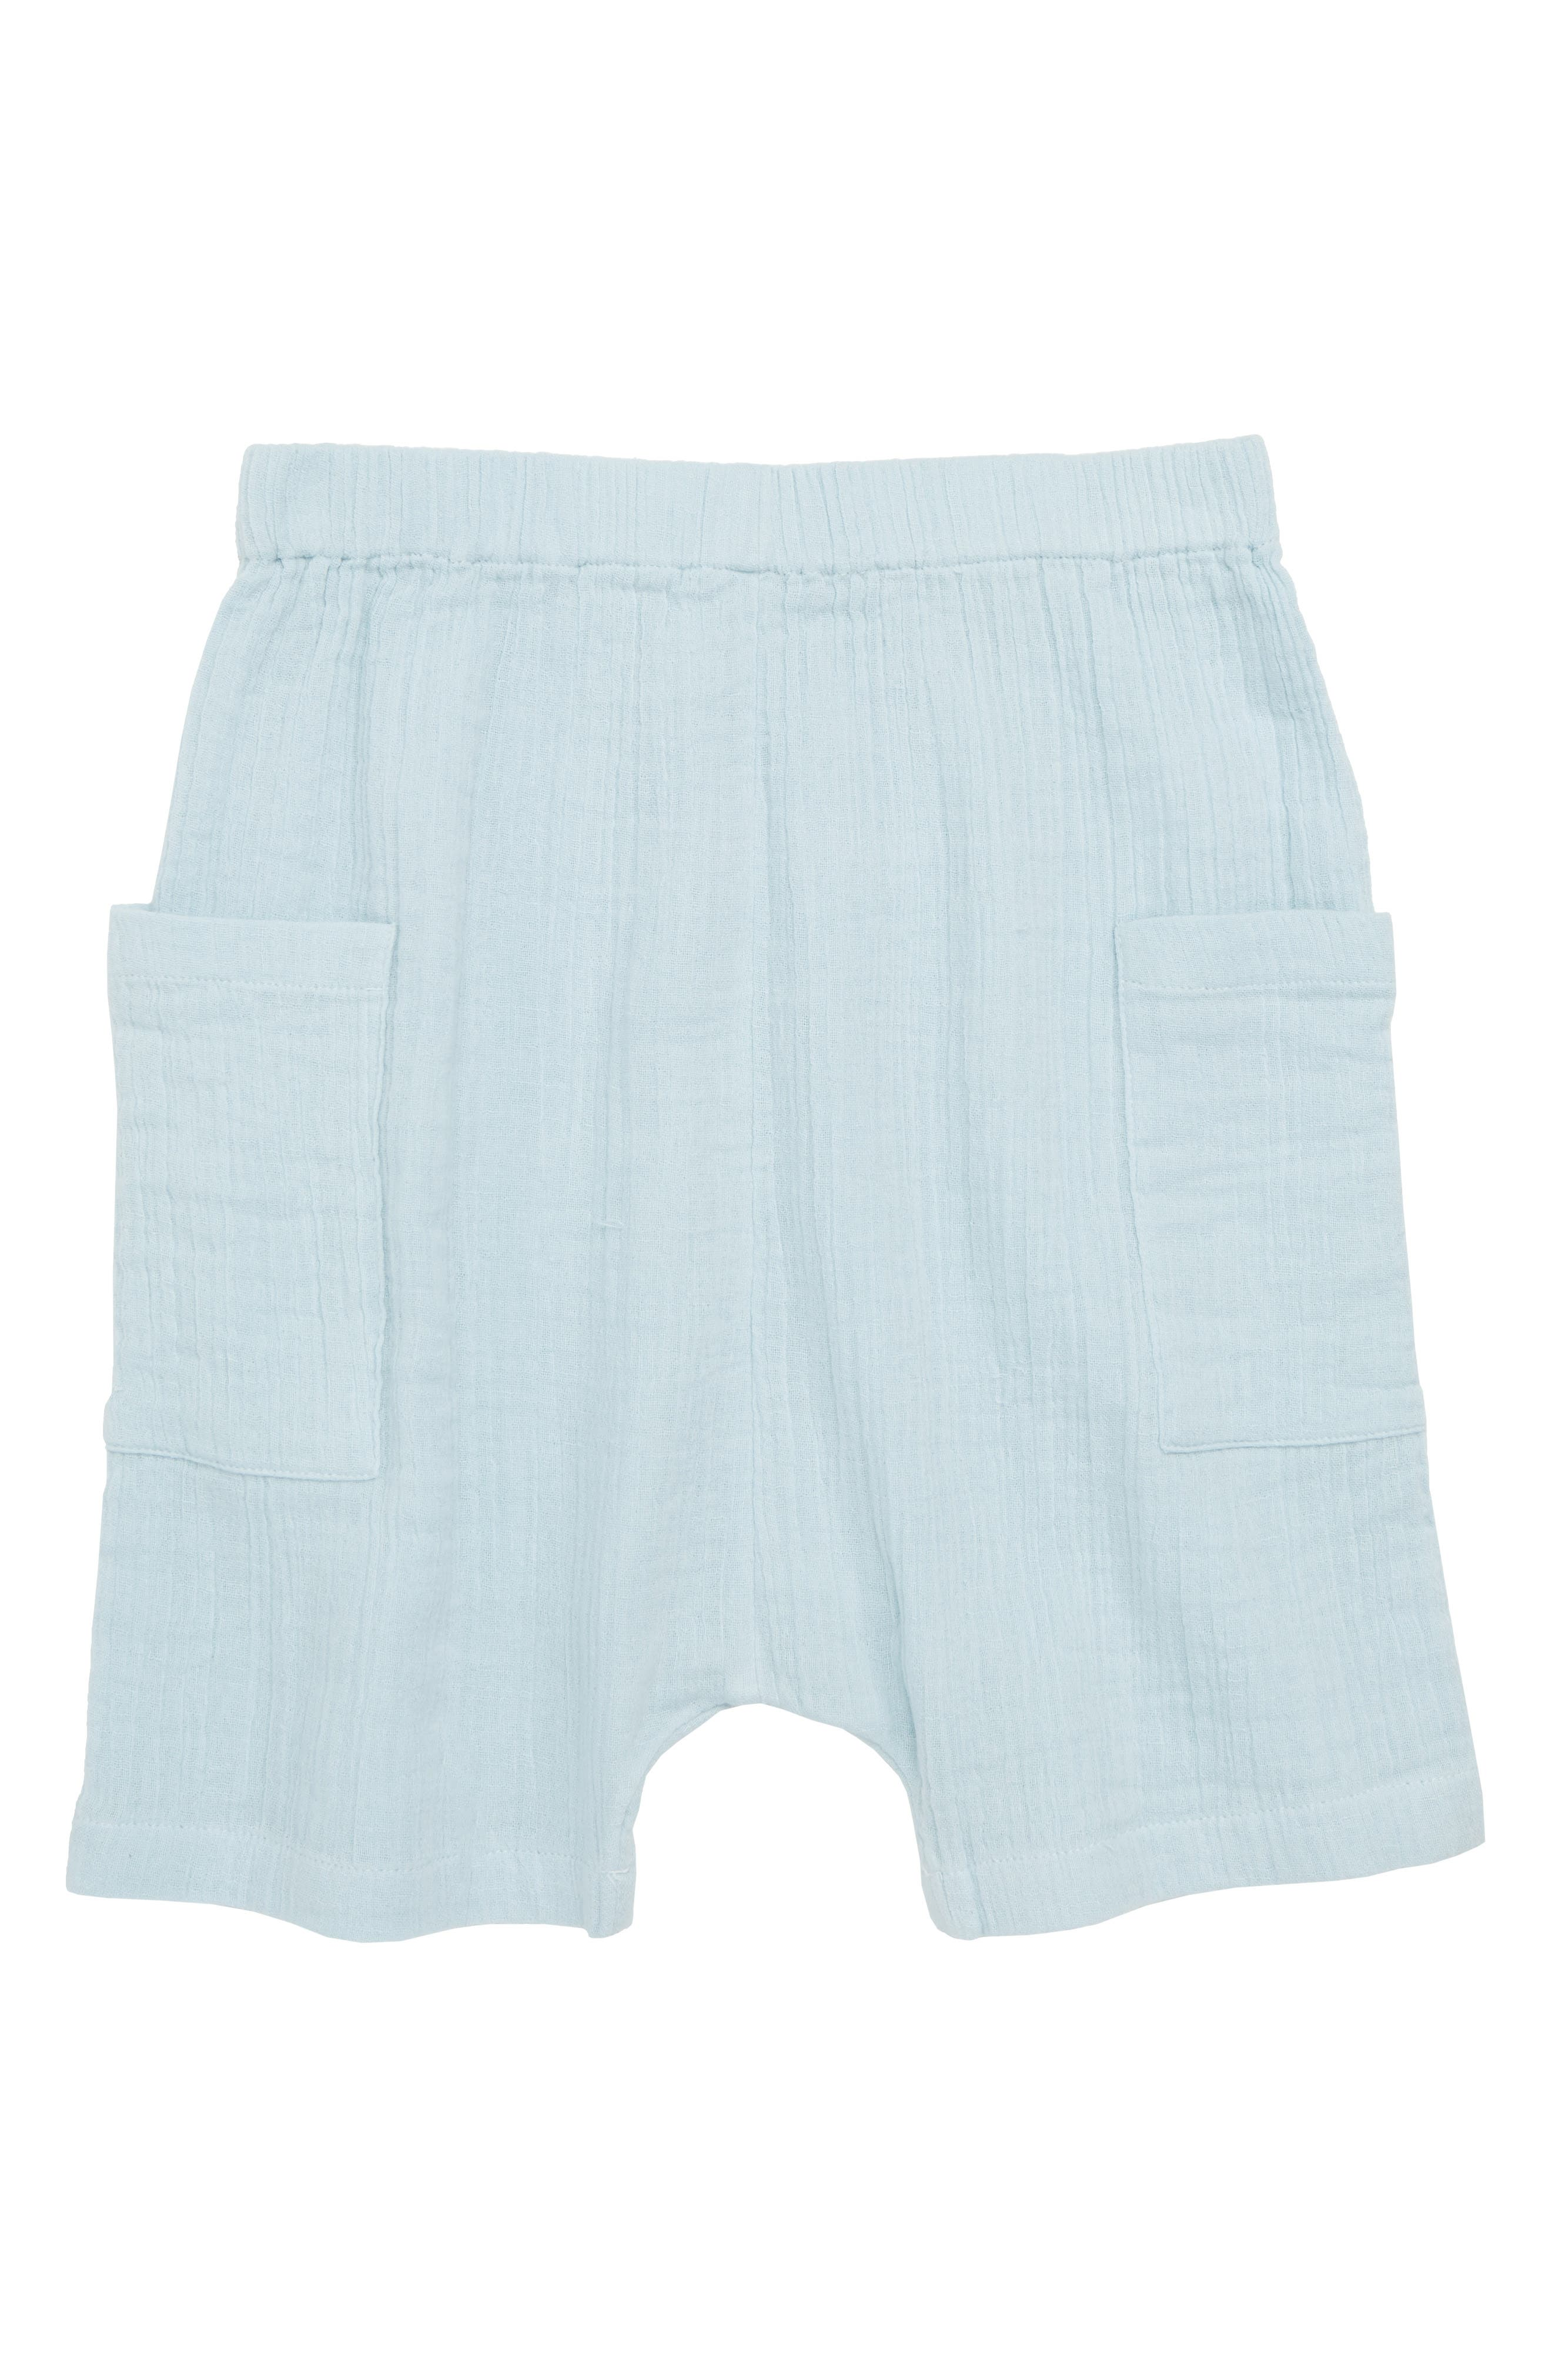 Crepe Moon Shorts,                         Main,                         color, Blue Sterling